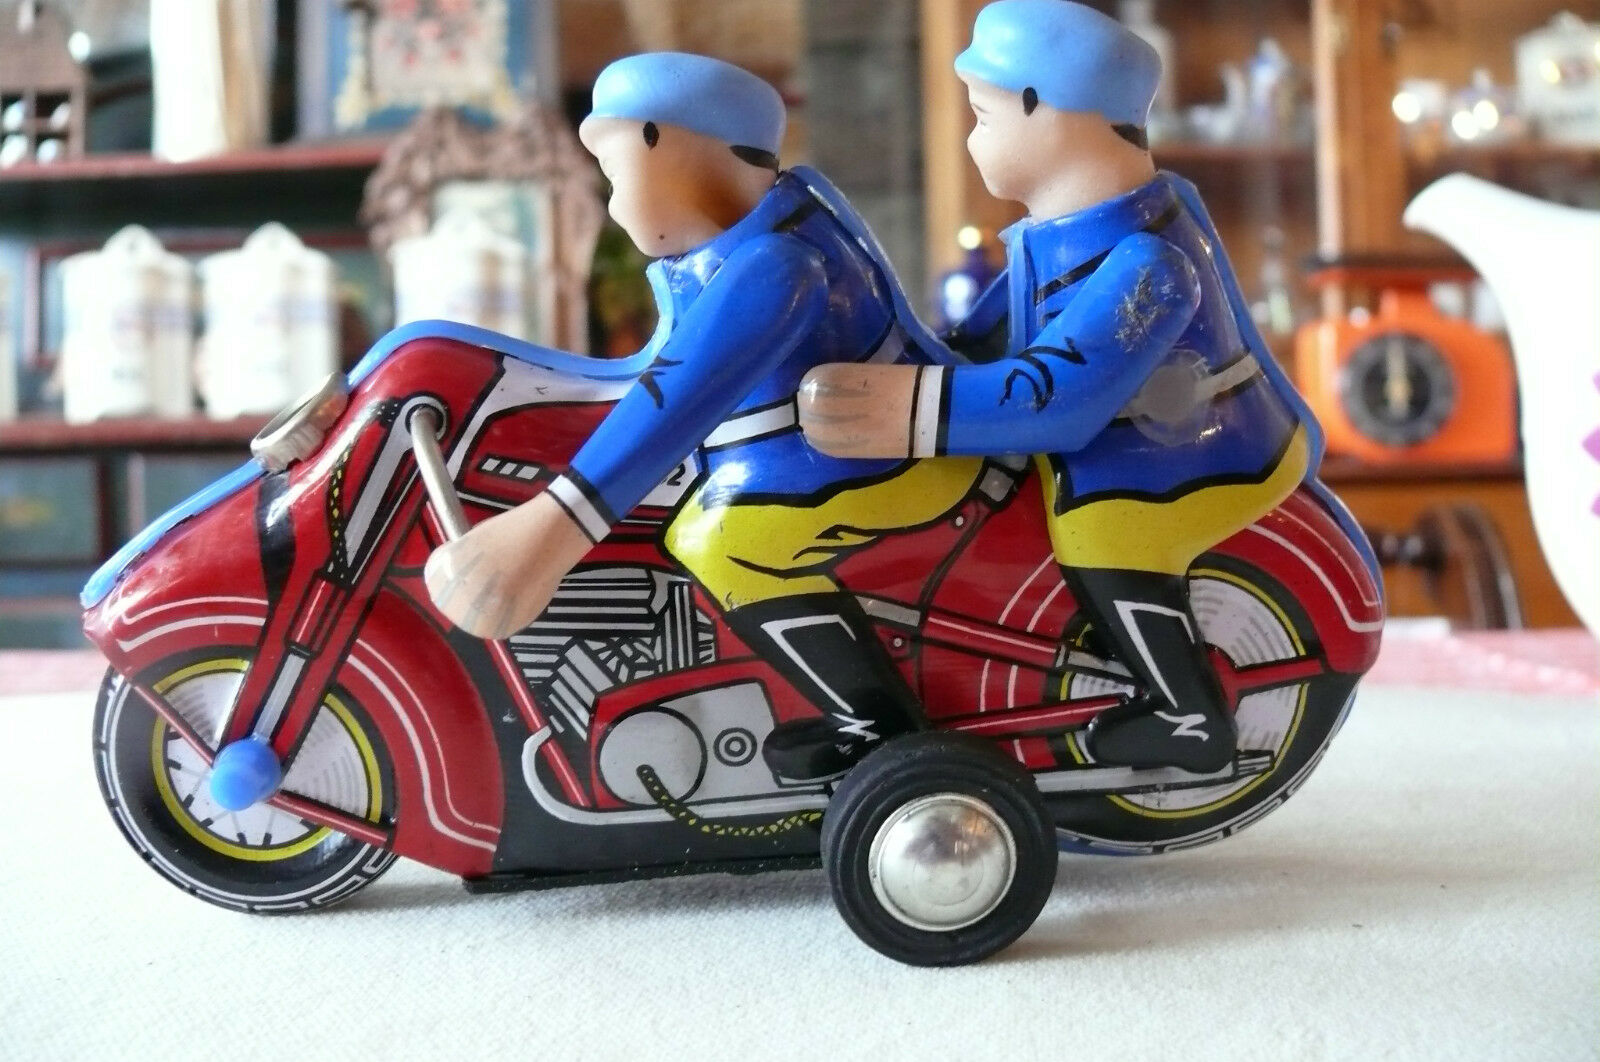 Tin Toy Mf-162 Police Officer Motor-Cycle Friction